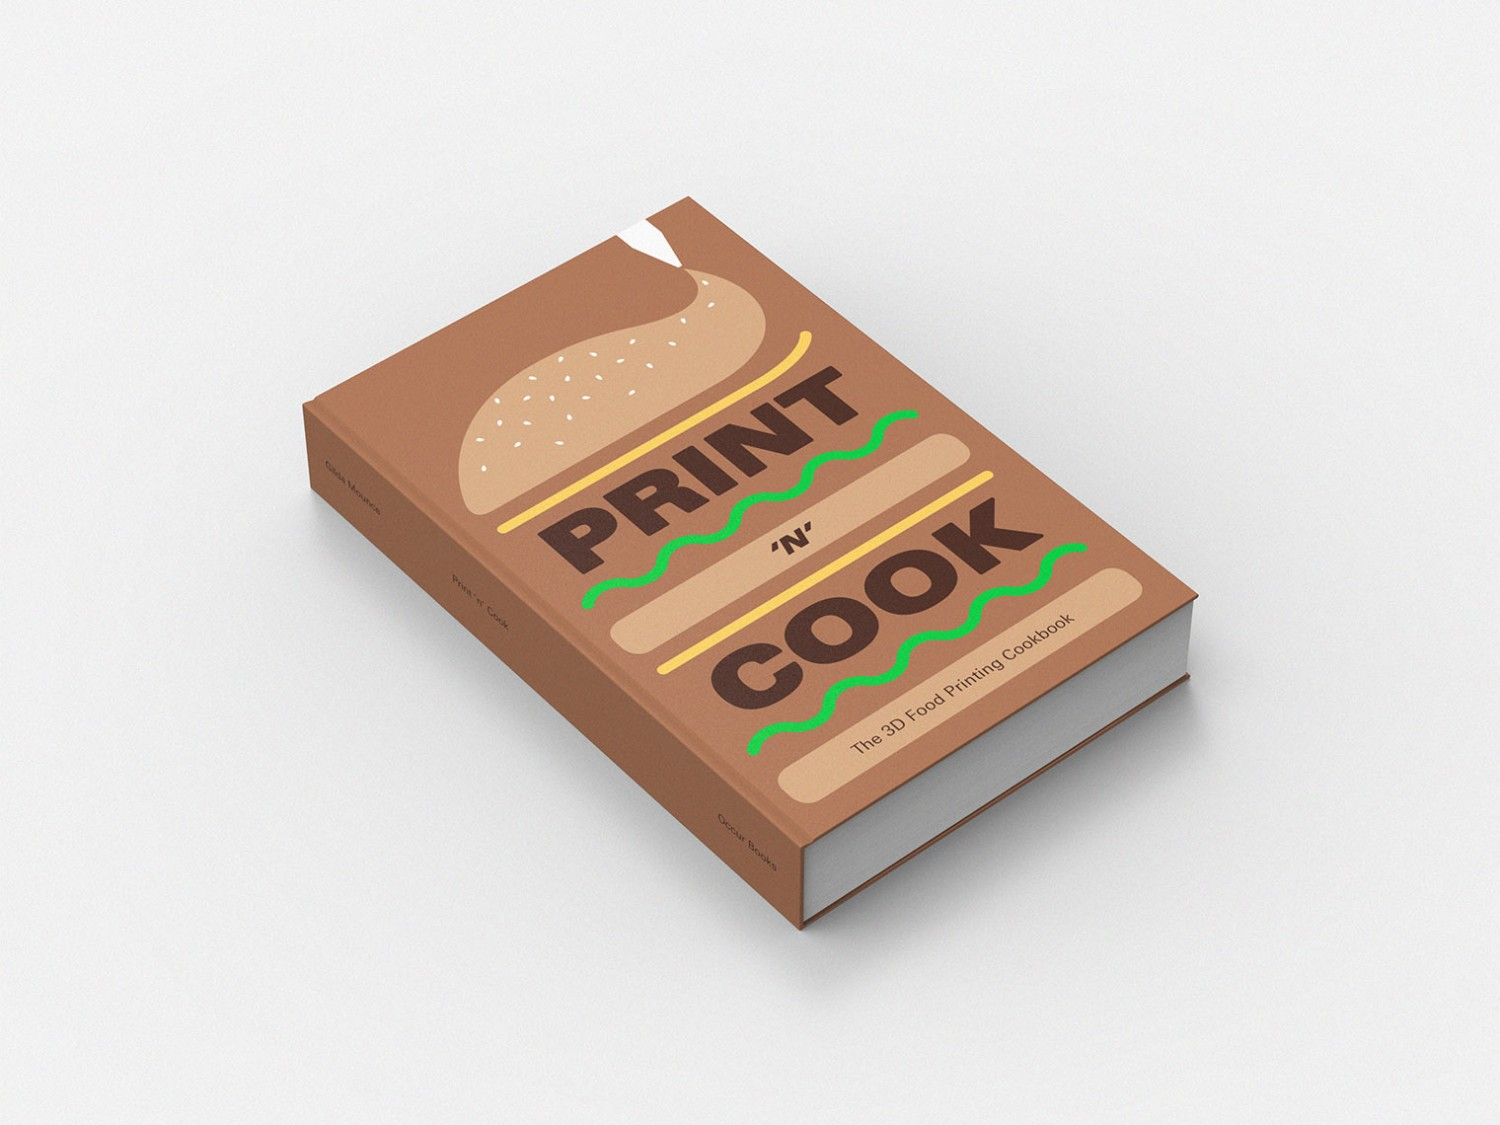 Print 'n' Cook: The 3D Food Printing Cookbook